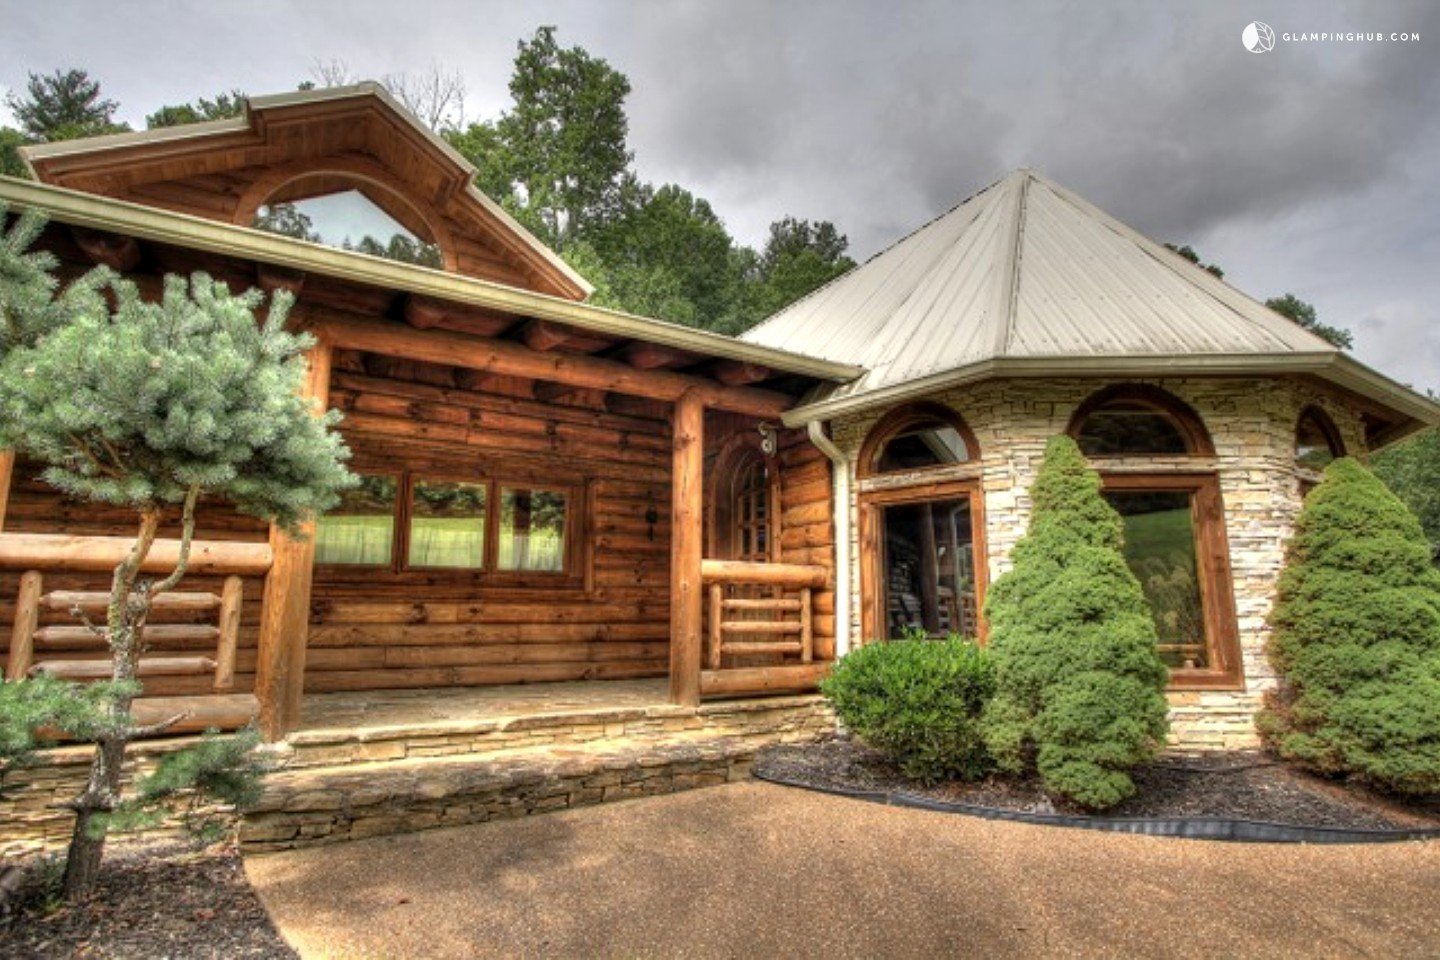 Luxury cabin rental near the great smoky mountains for Cabin rental smokey mountains